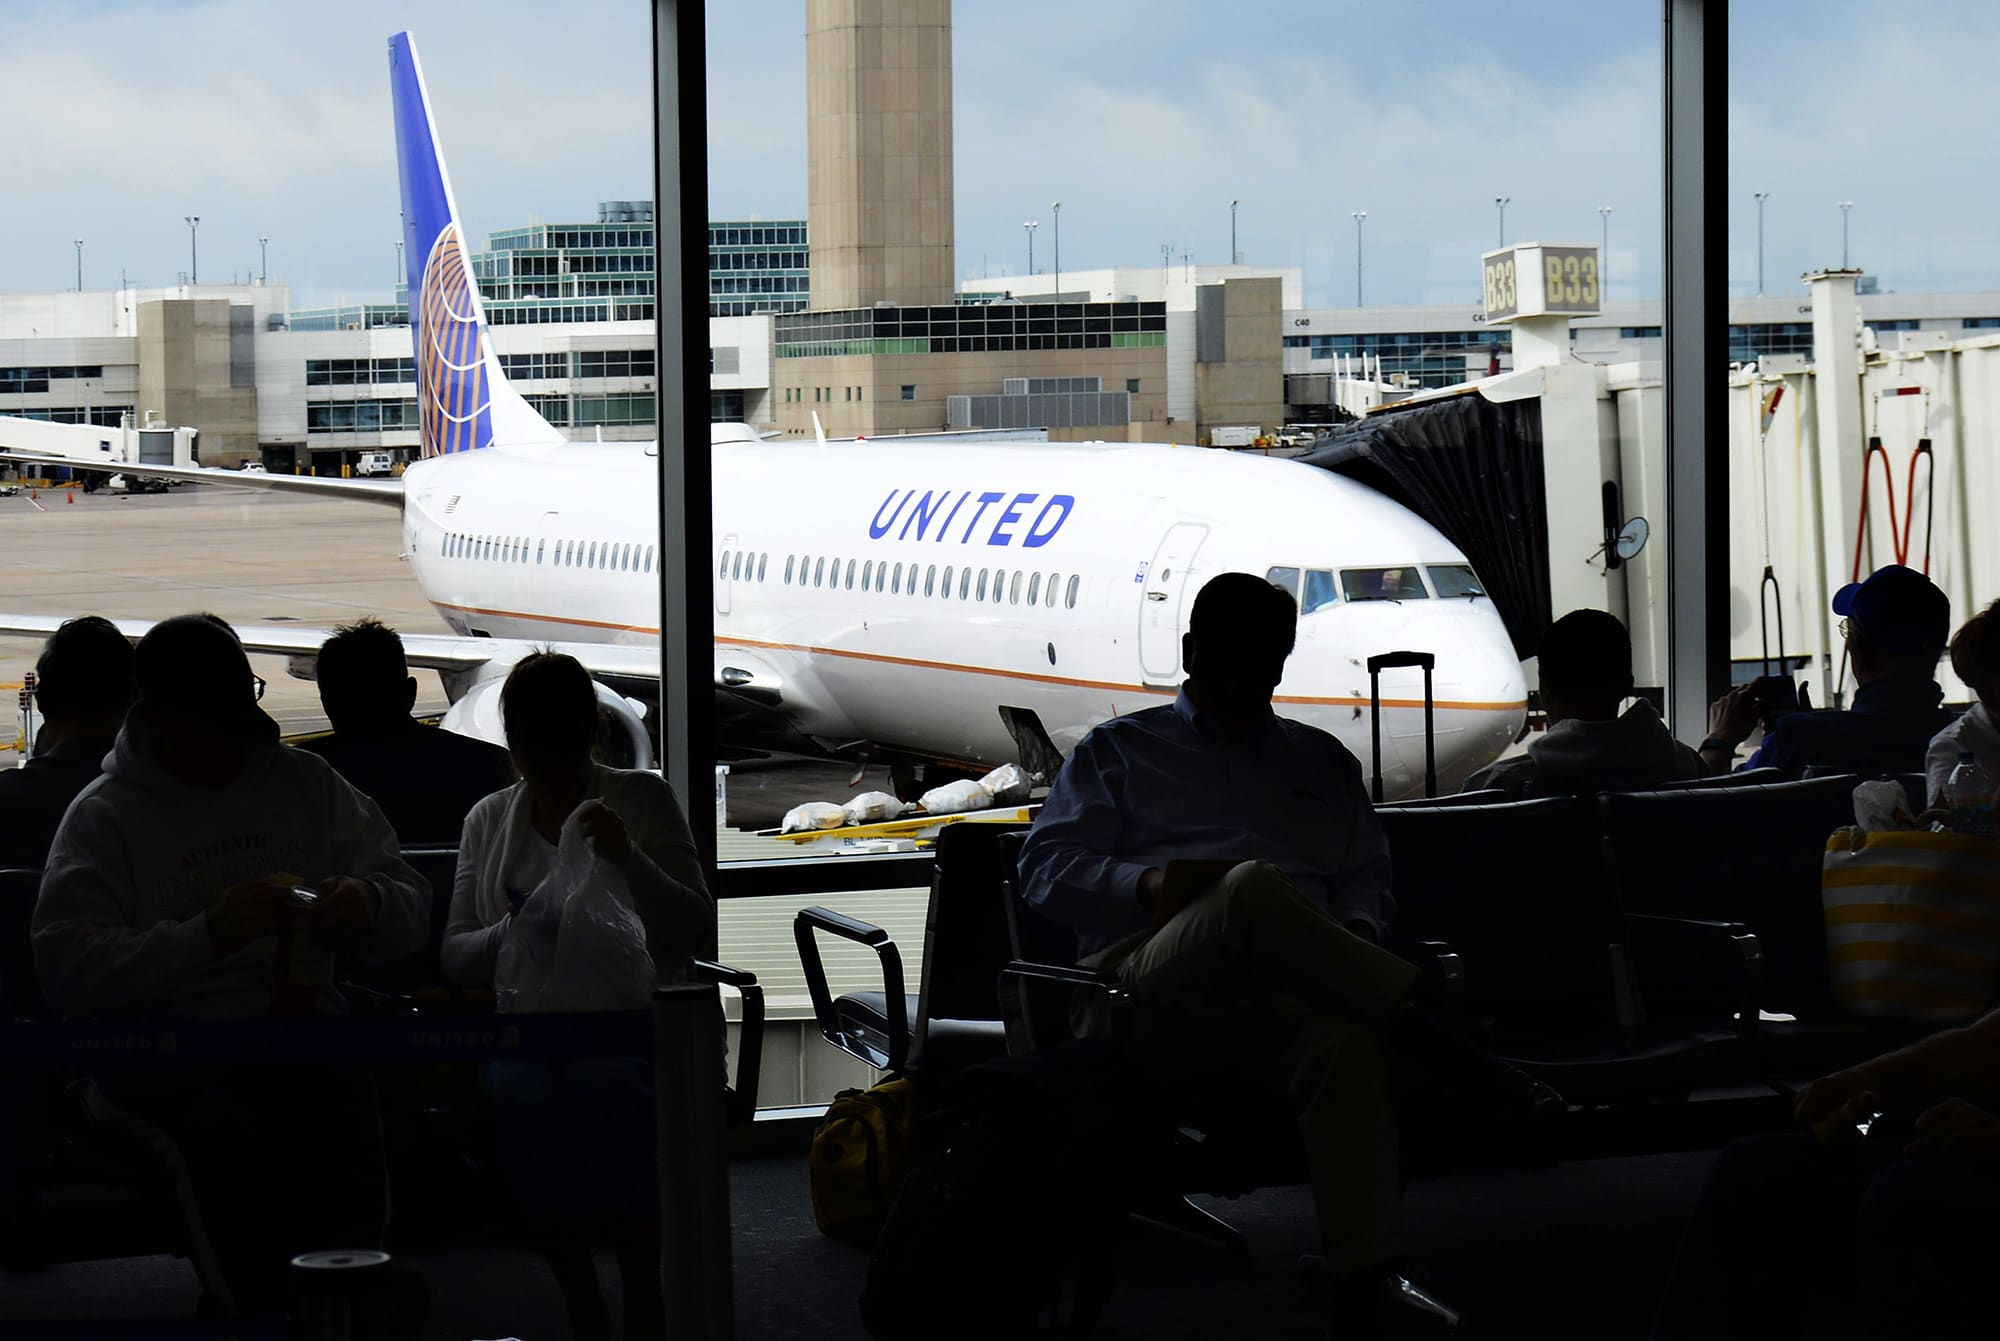 United Airlines starts offering bus service straight to Colorado ski slopes from Denver